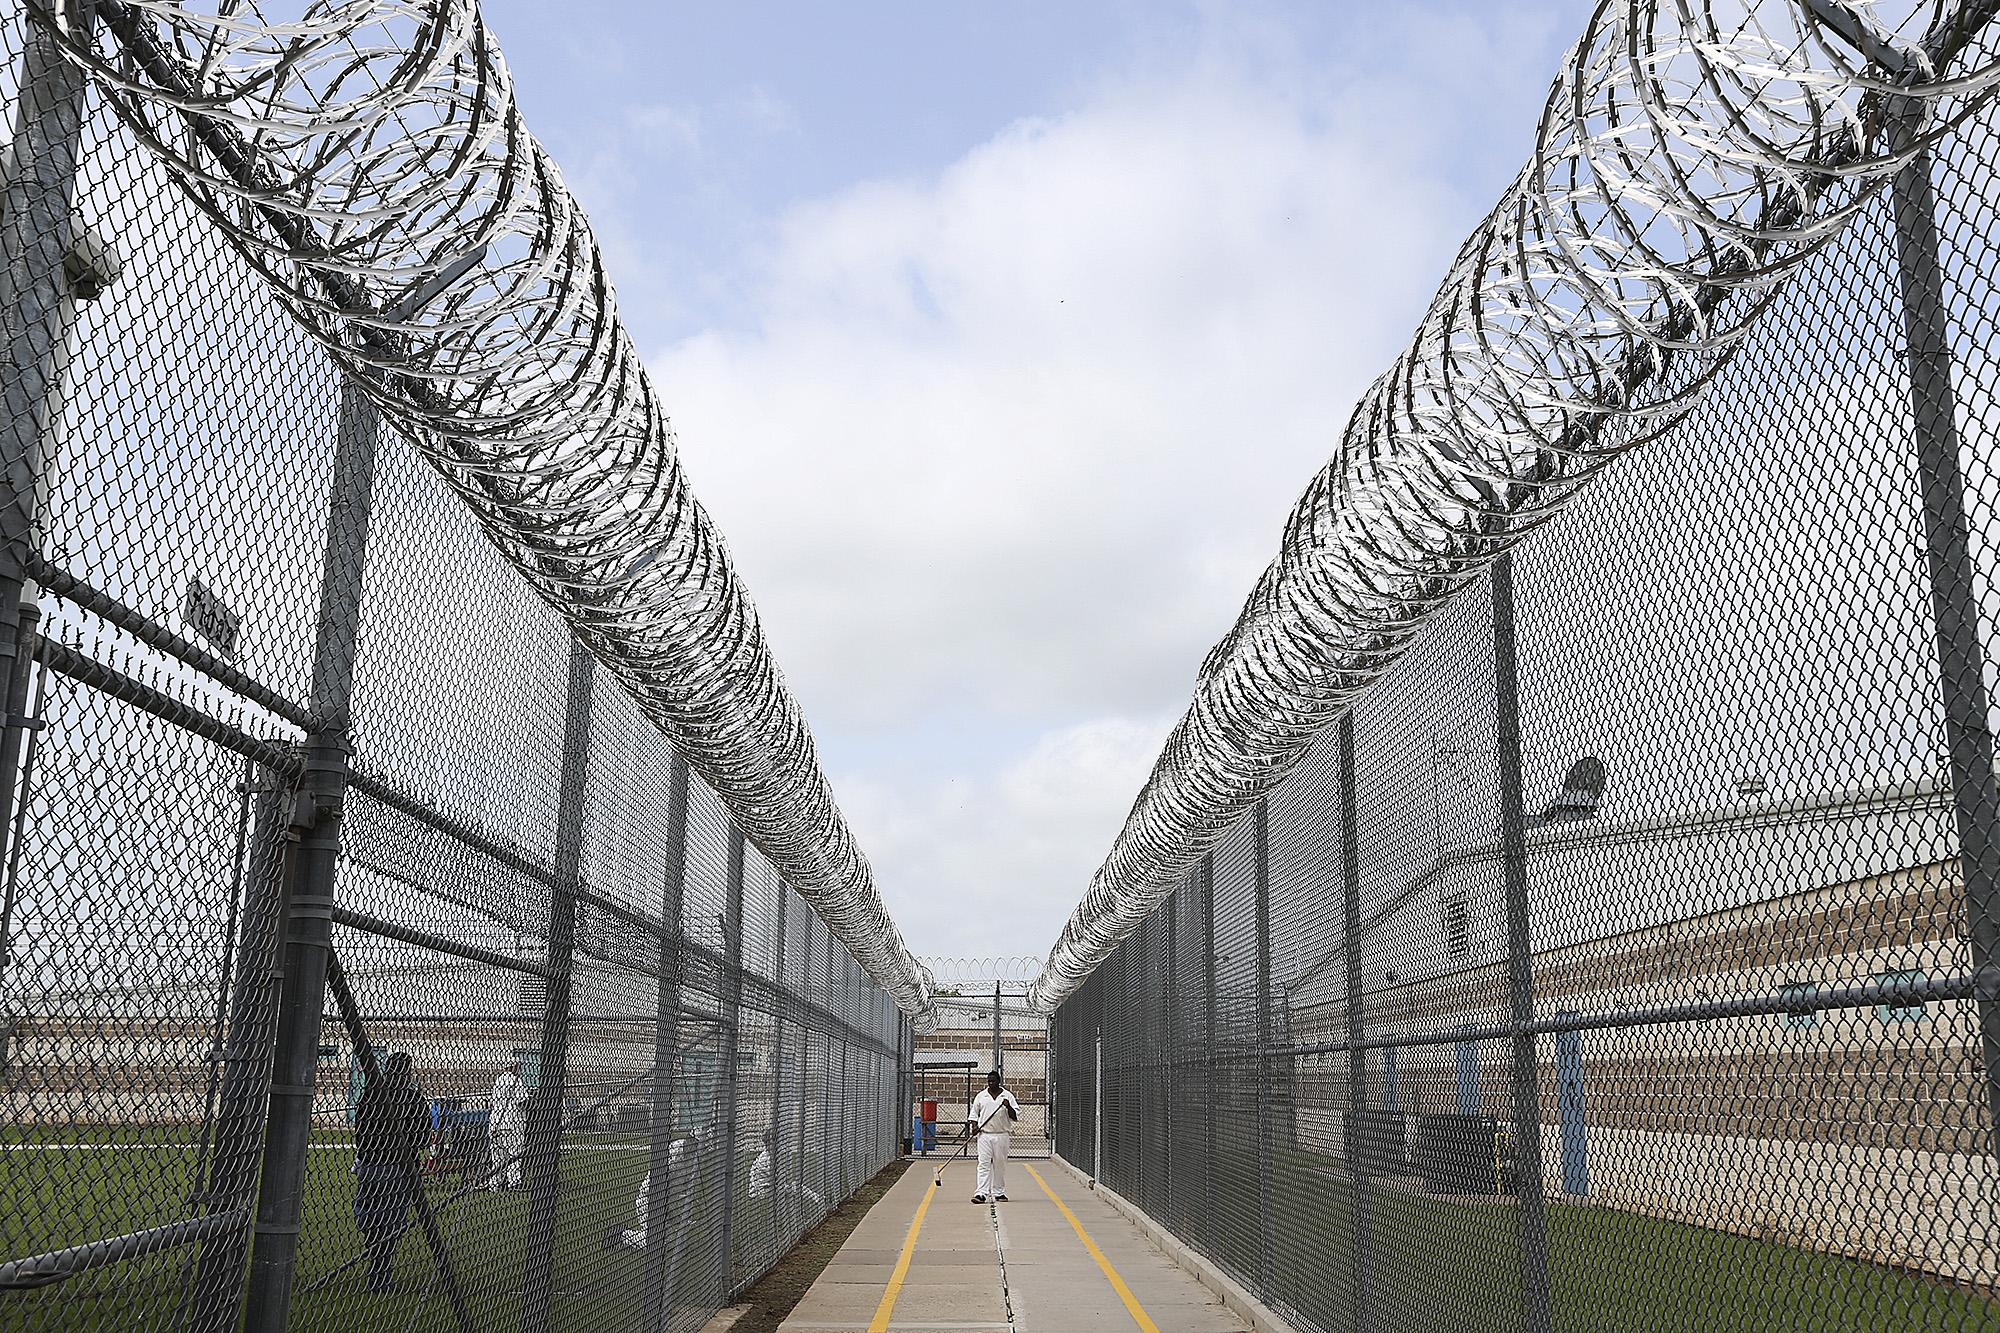 Texas Prison Officials To Begin 1 000 Inmate Transfers